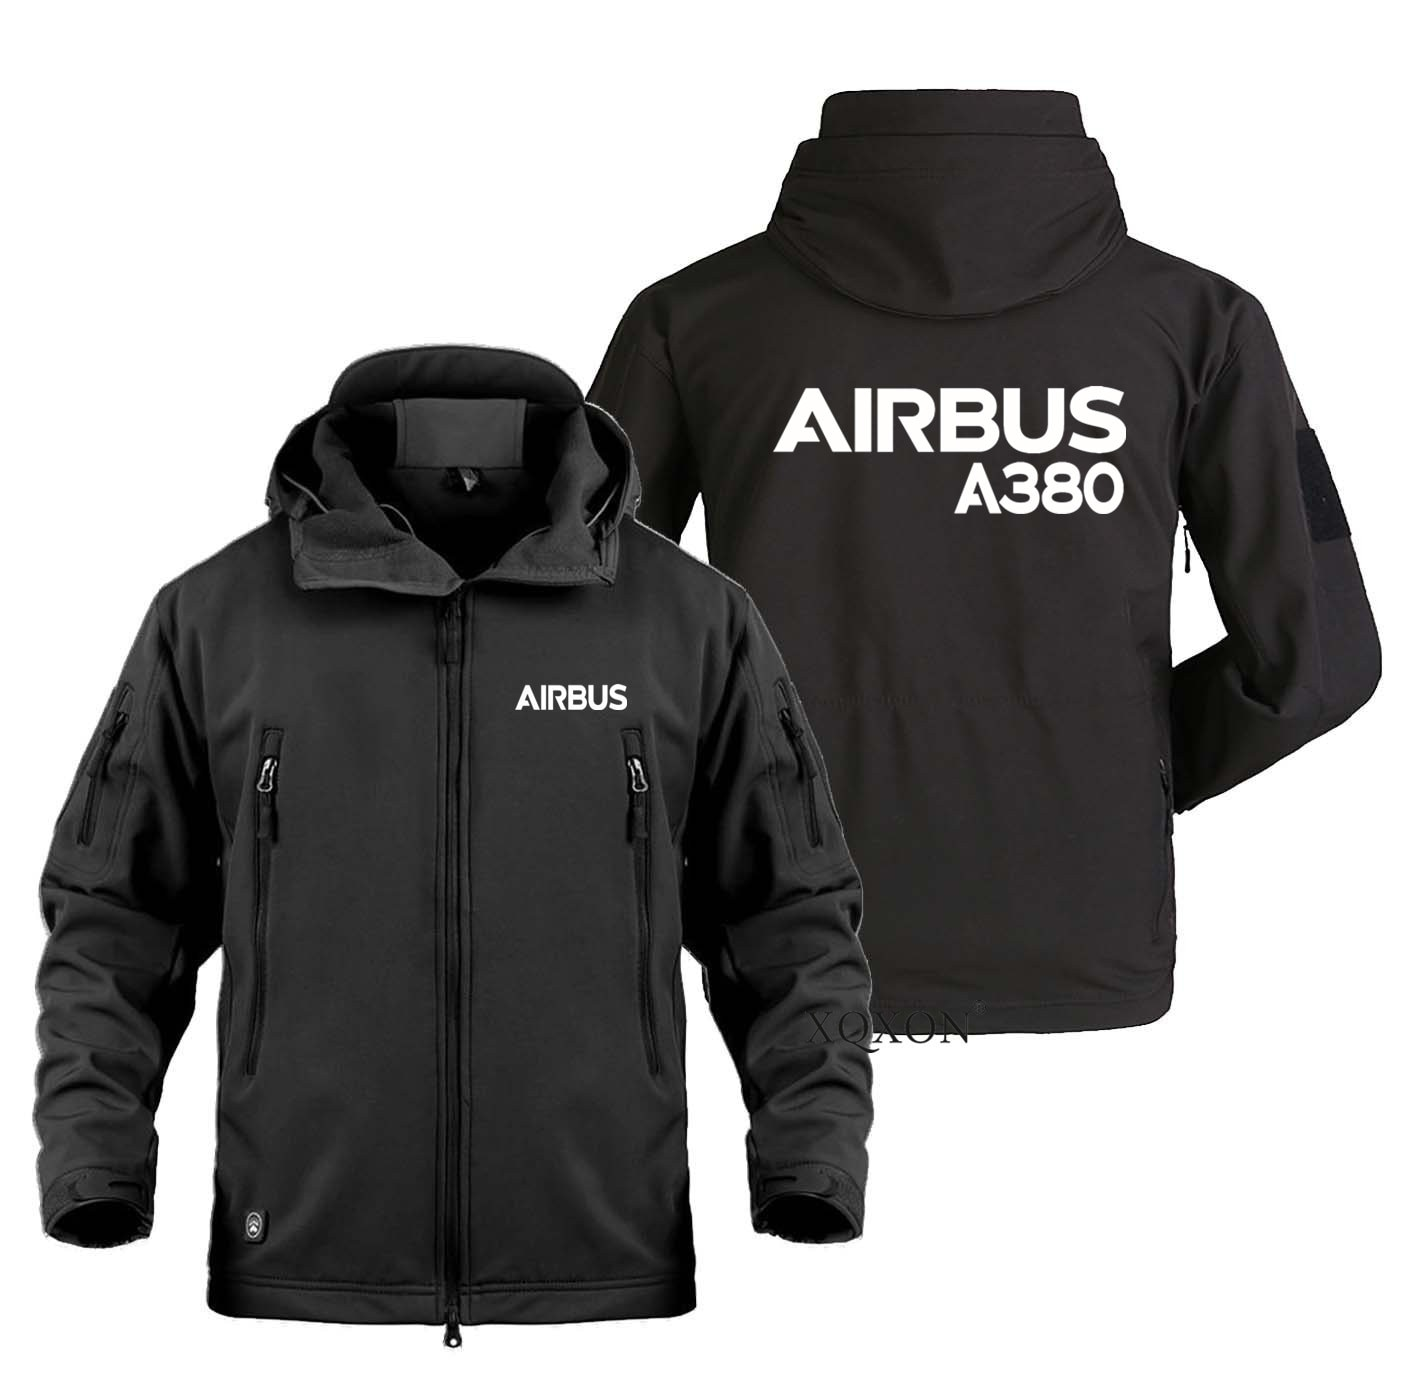 S-4XL Airbus A380 New Flying Aviation Jackets for Men Hot Trip Military Outdoor SoftShell Adventure Travel Man Coat Jacket K721